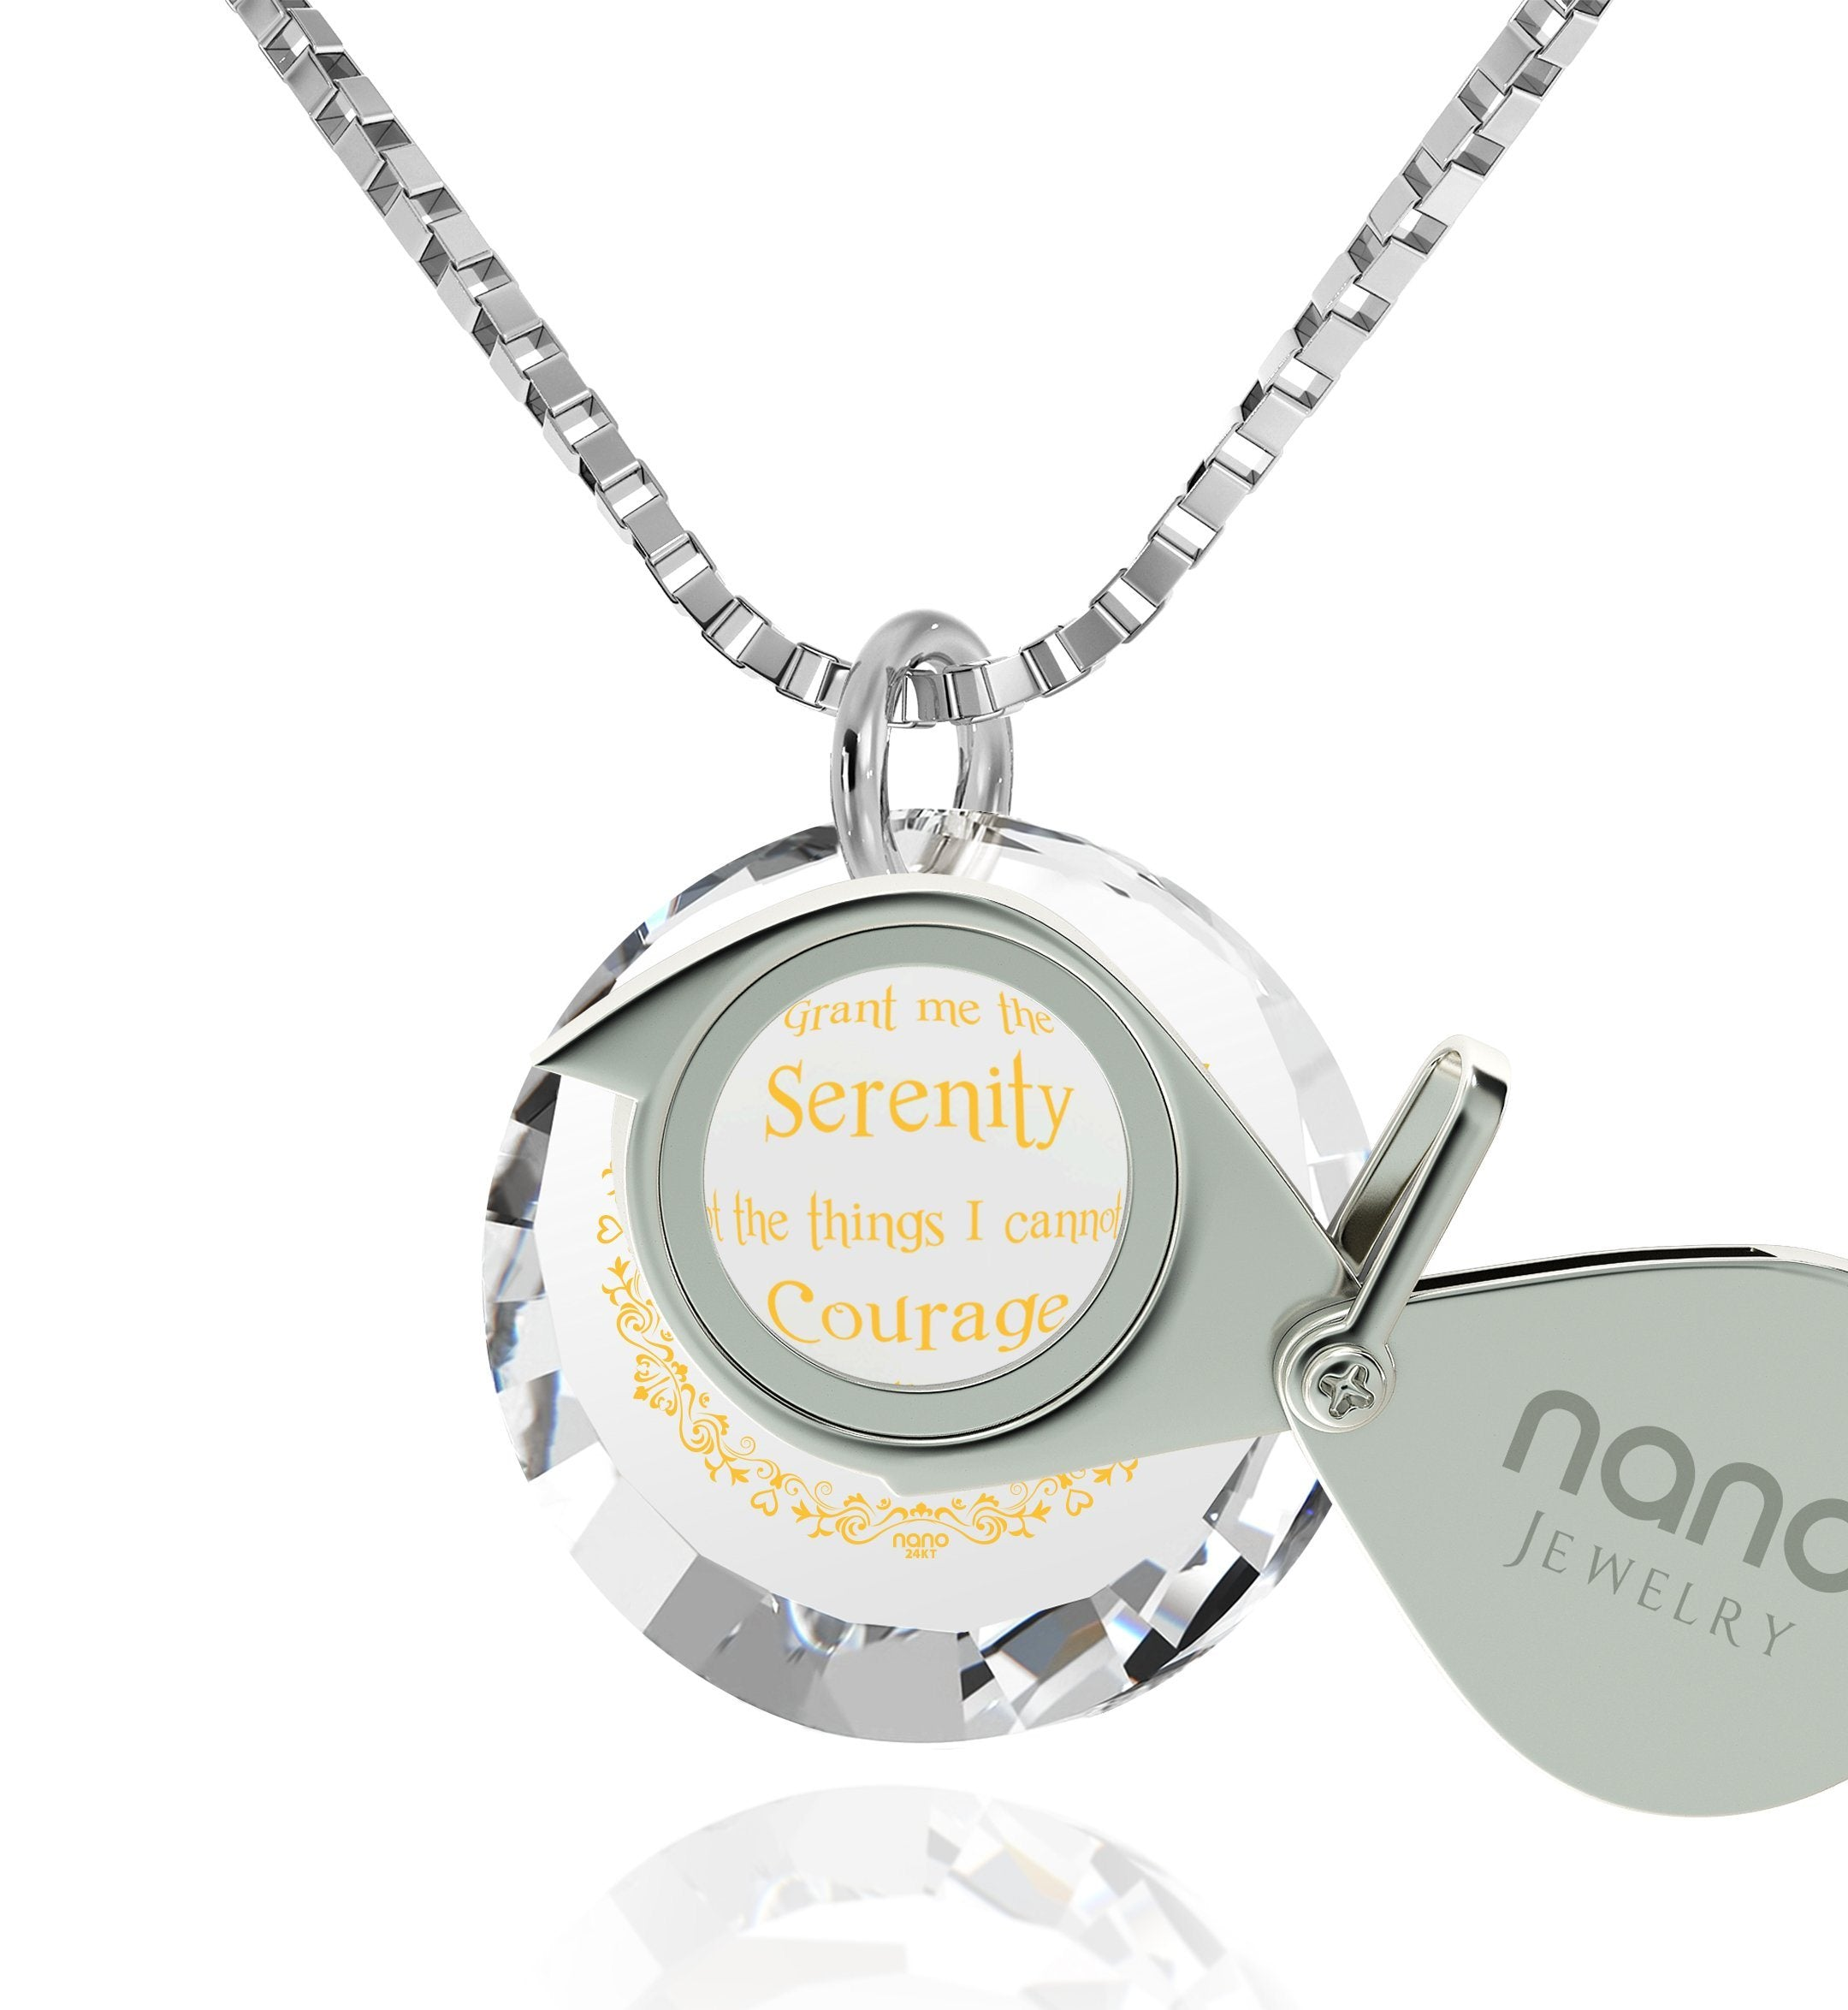 Serenity Prayer Necklace: Top Gifts for Wife, Women's Sterling Silver Jewelry, Nano Jewelry